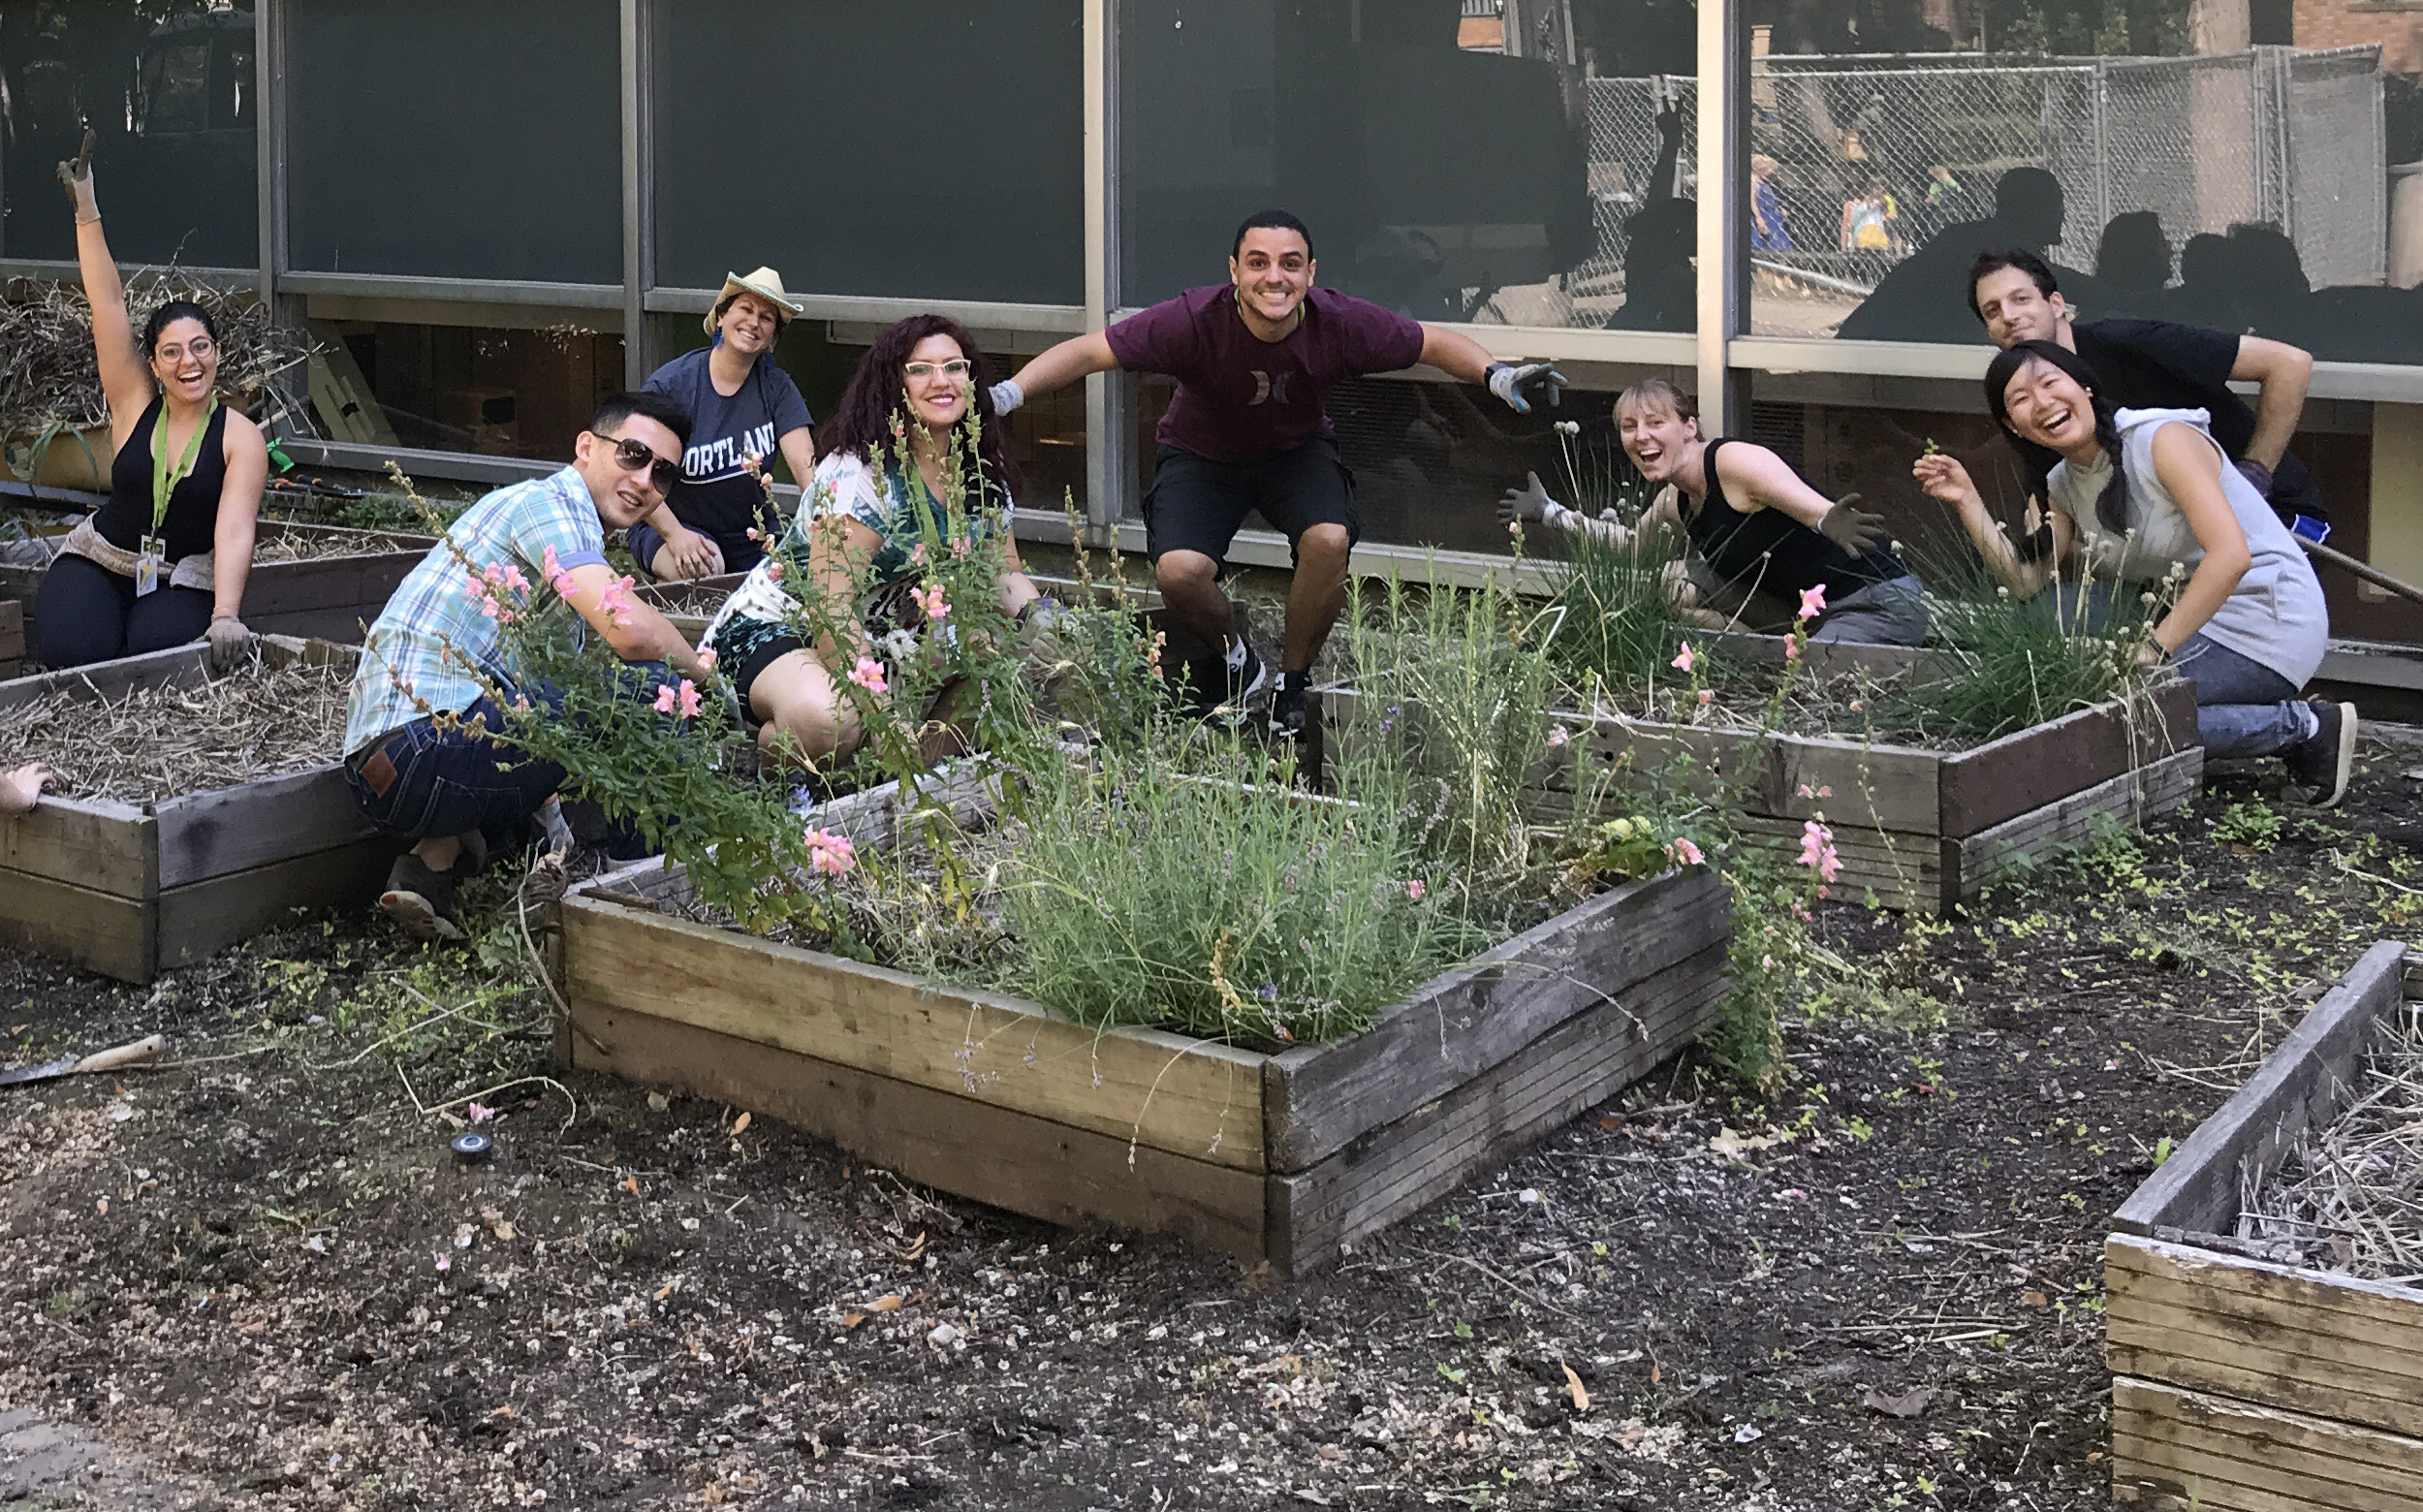 Students at Portland State University enjoy planting flower beds around the campus.